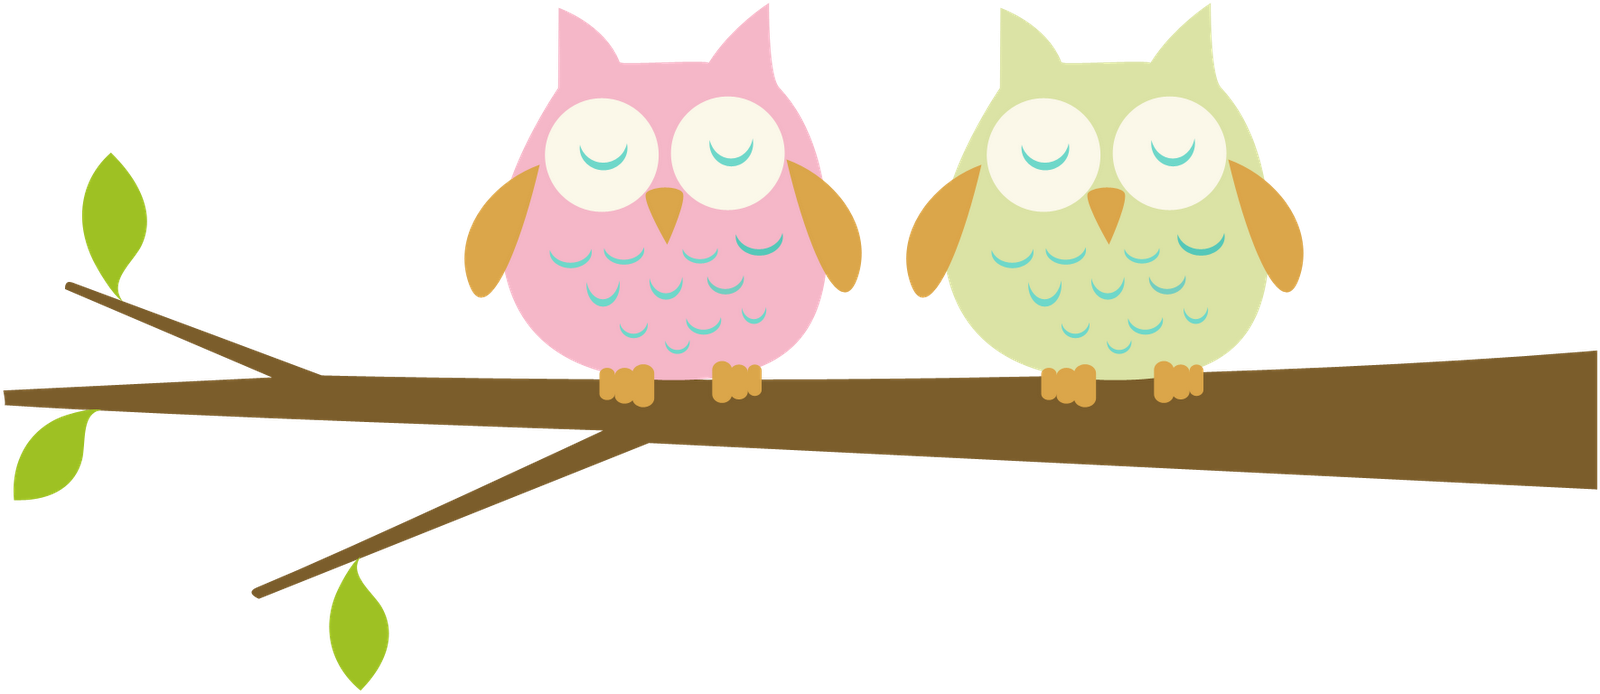 Owl clip art png. Baby free tada clipart